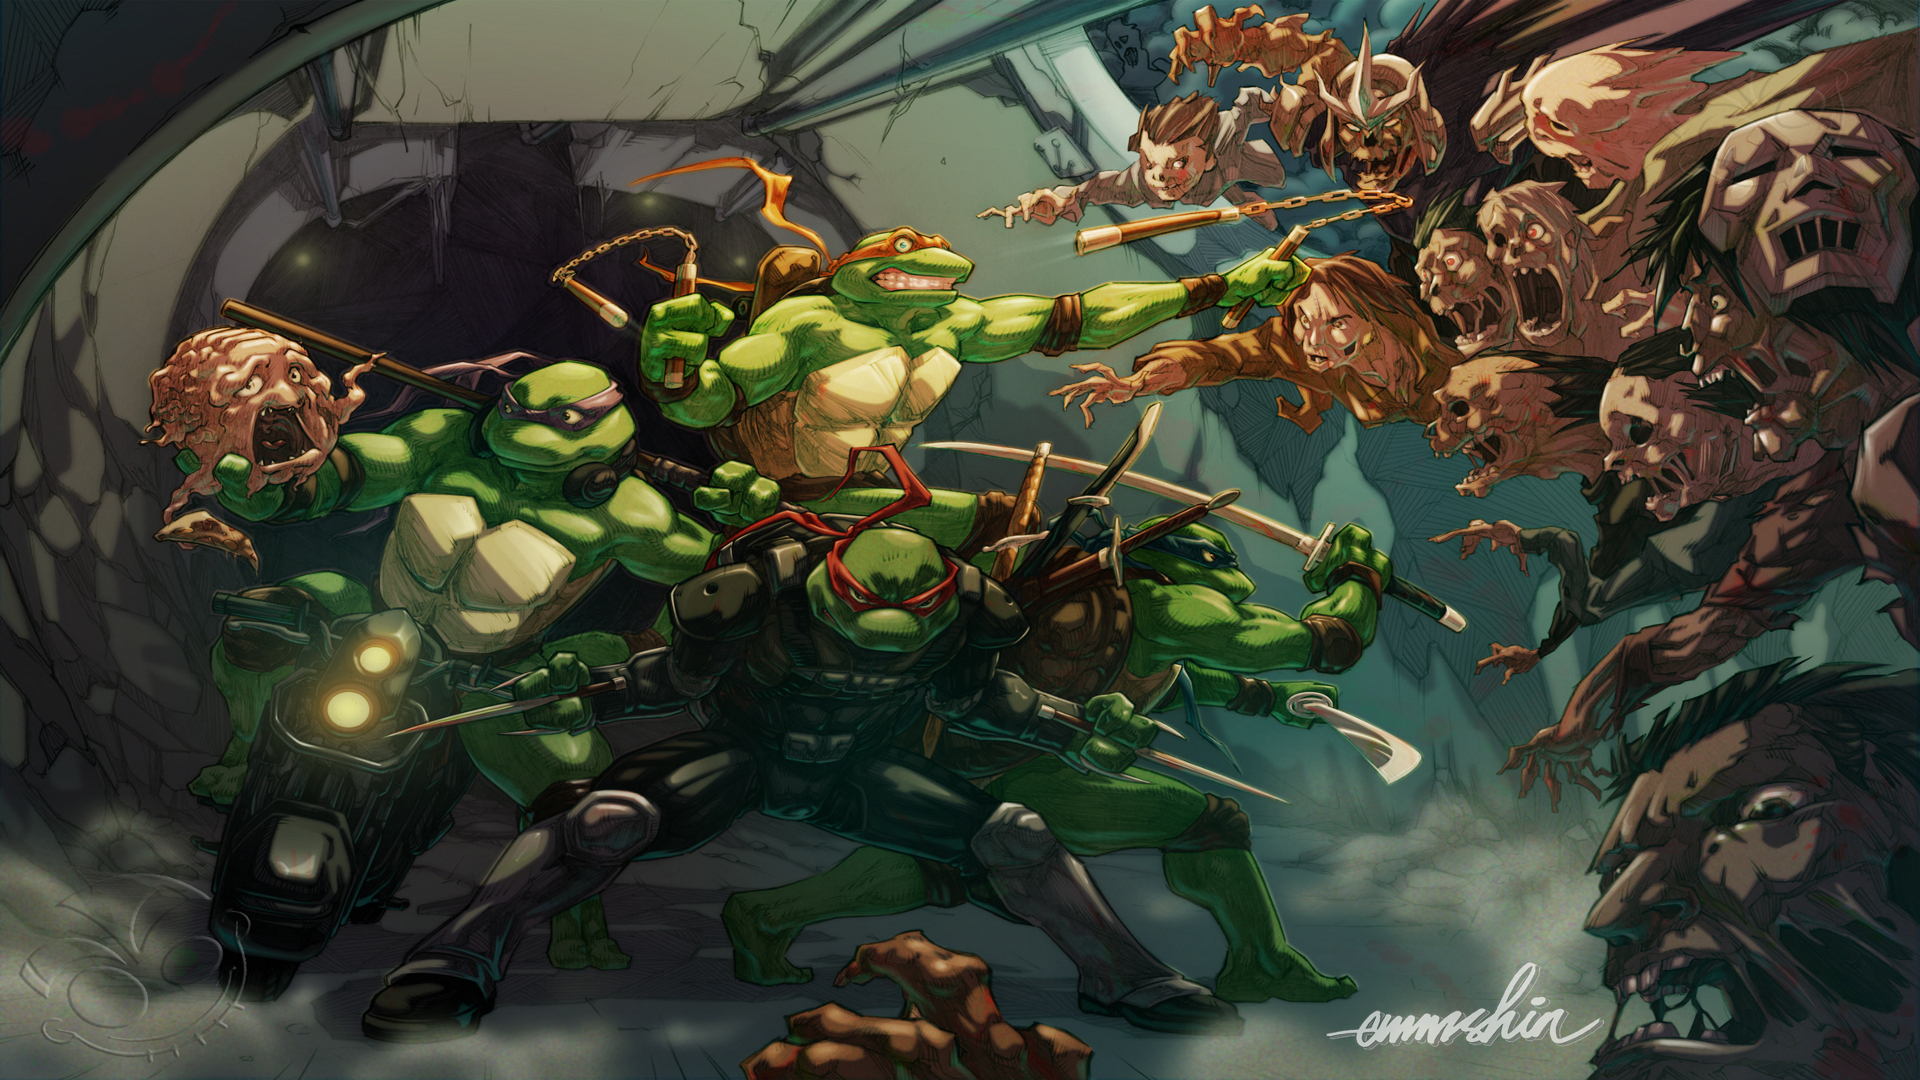 TMNT Wallpaper HD Amazing